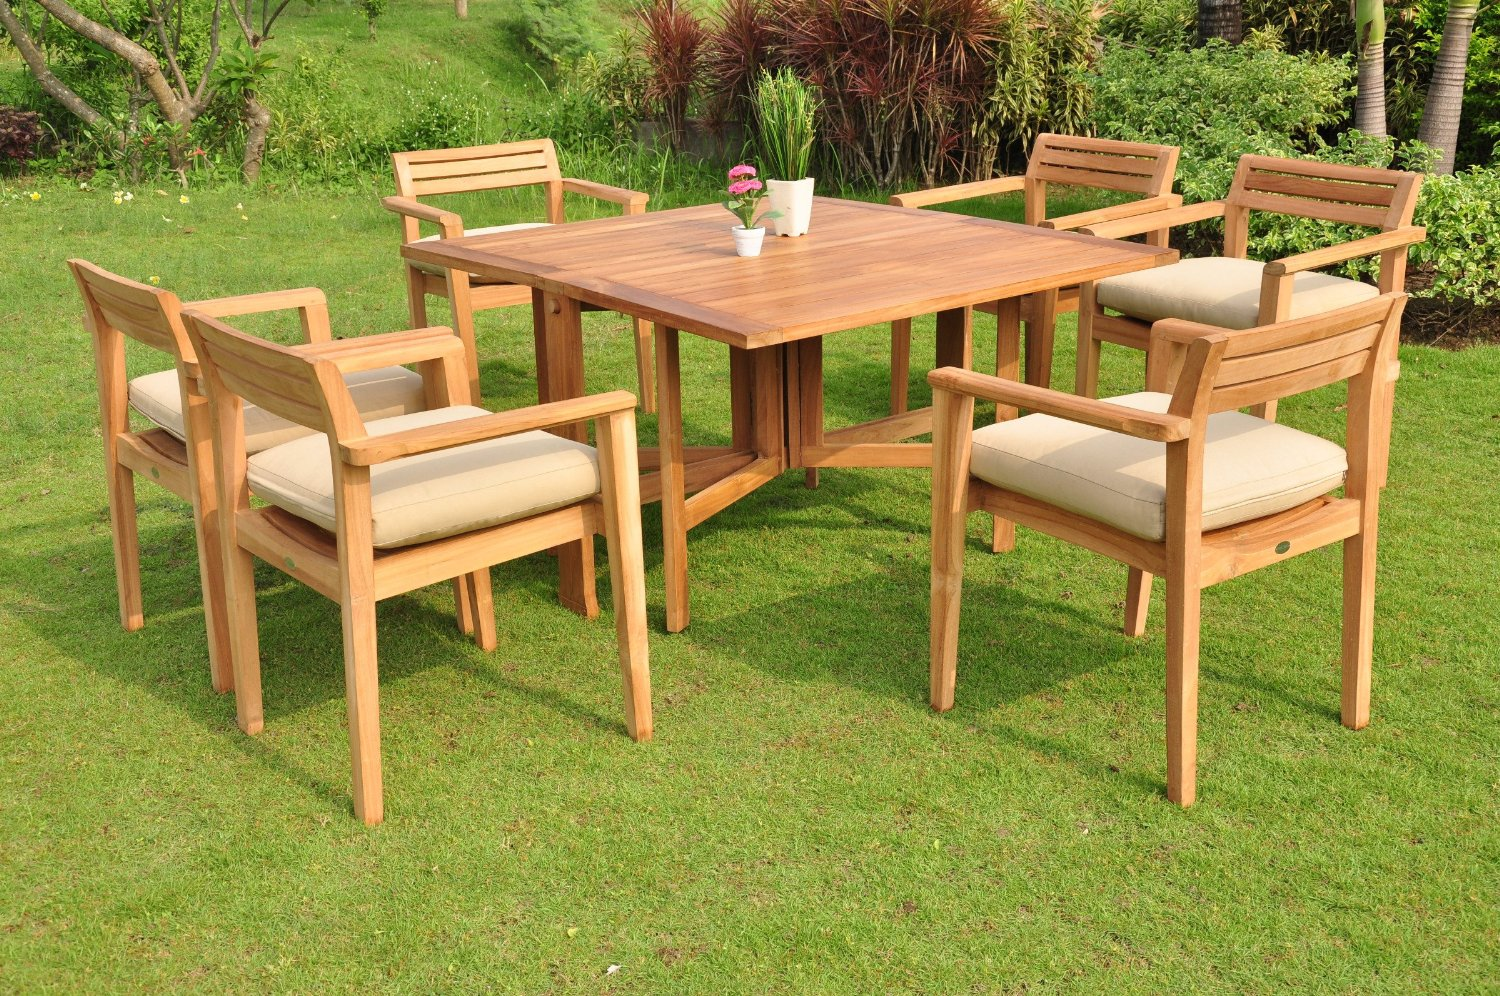 Teak dining table indoor